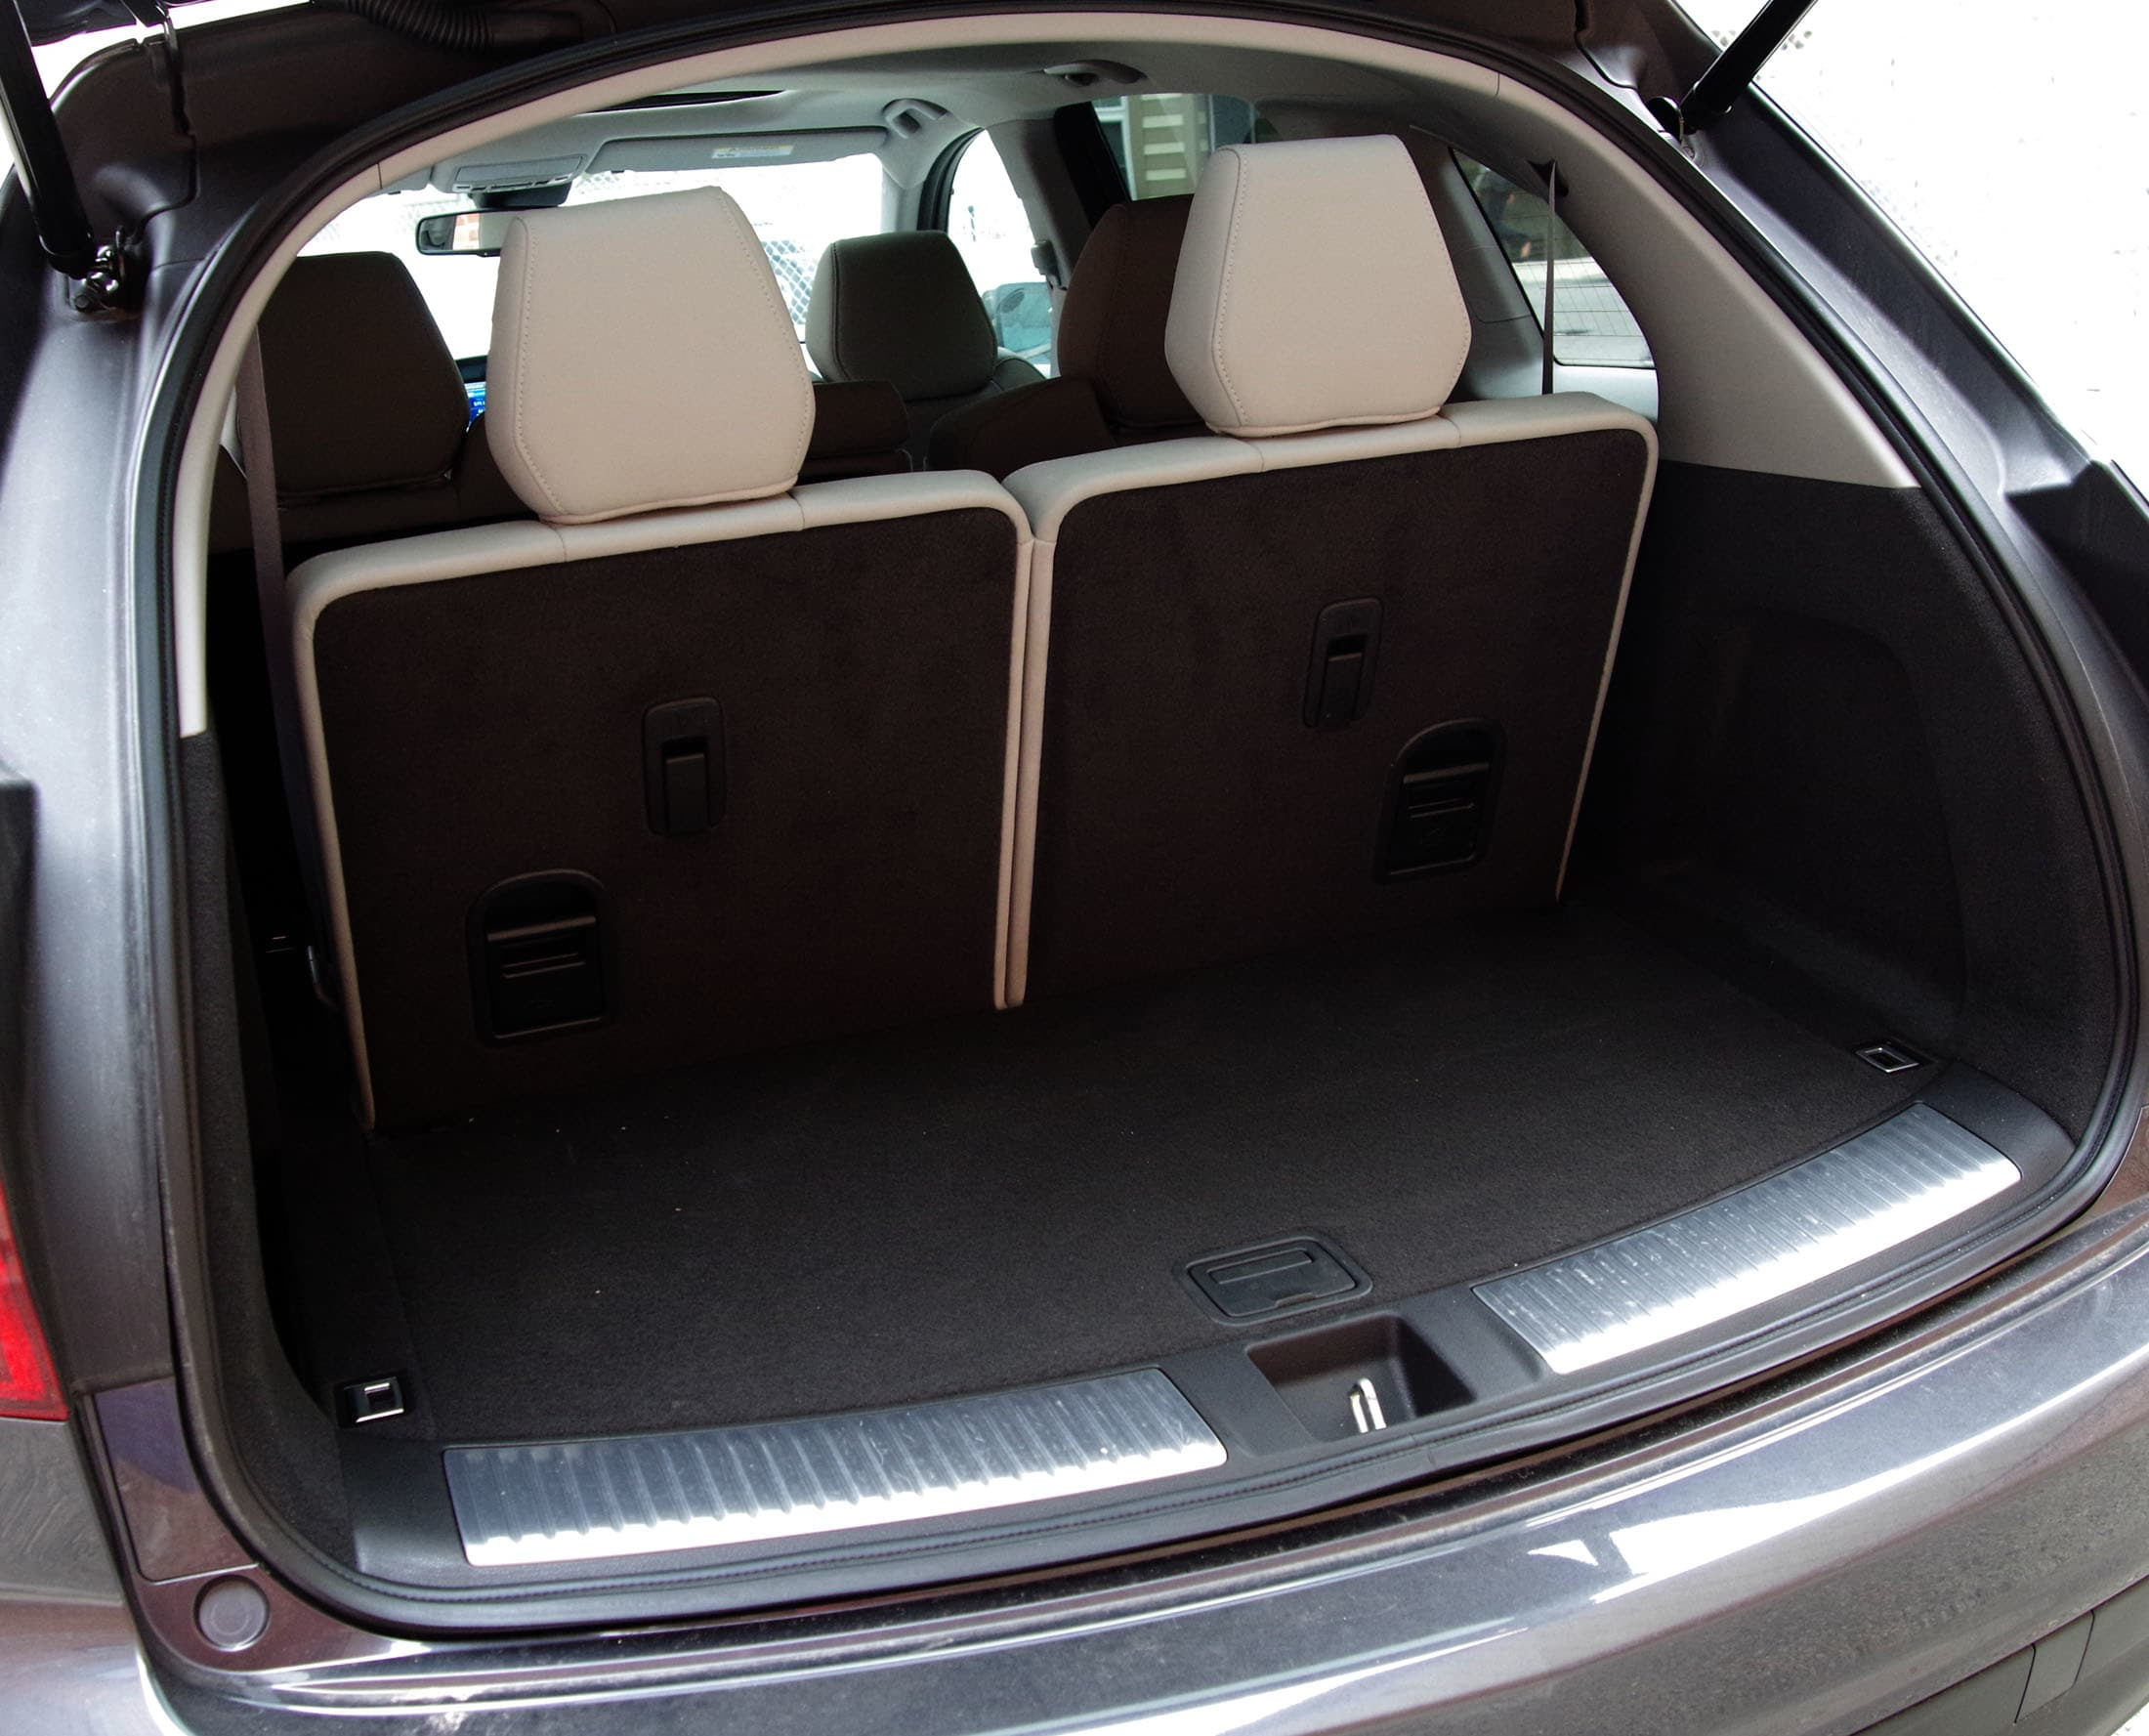 The 2014 Acura MDX's rear cargo area with all seats up,